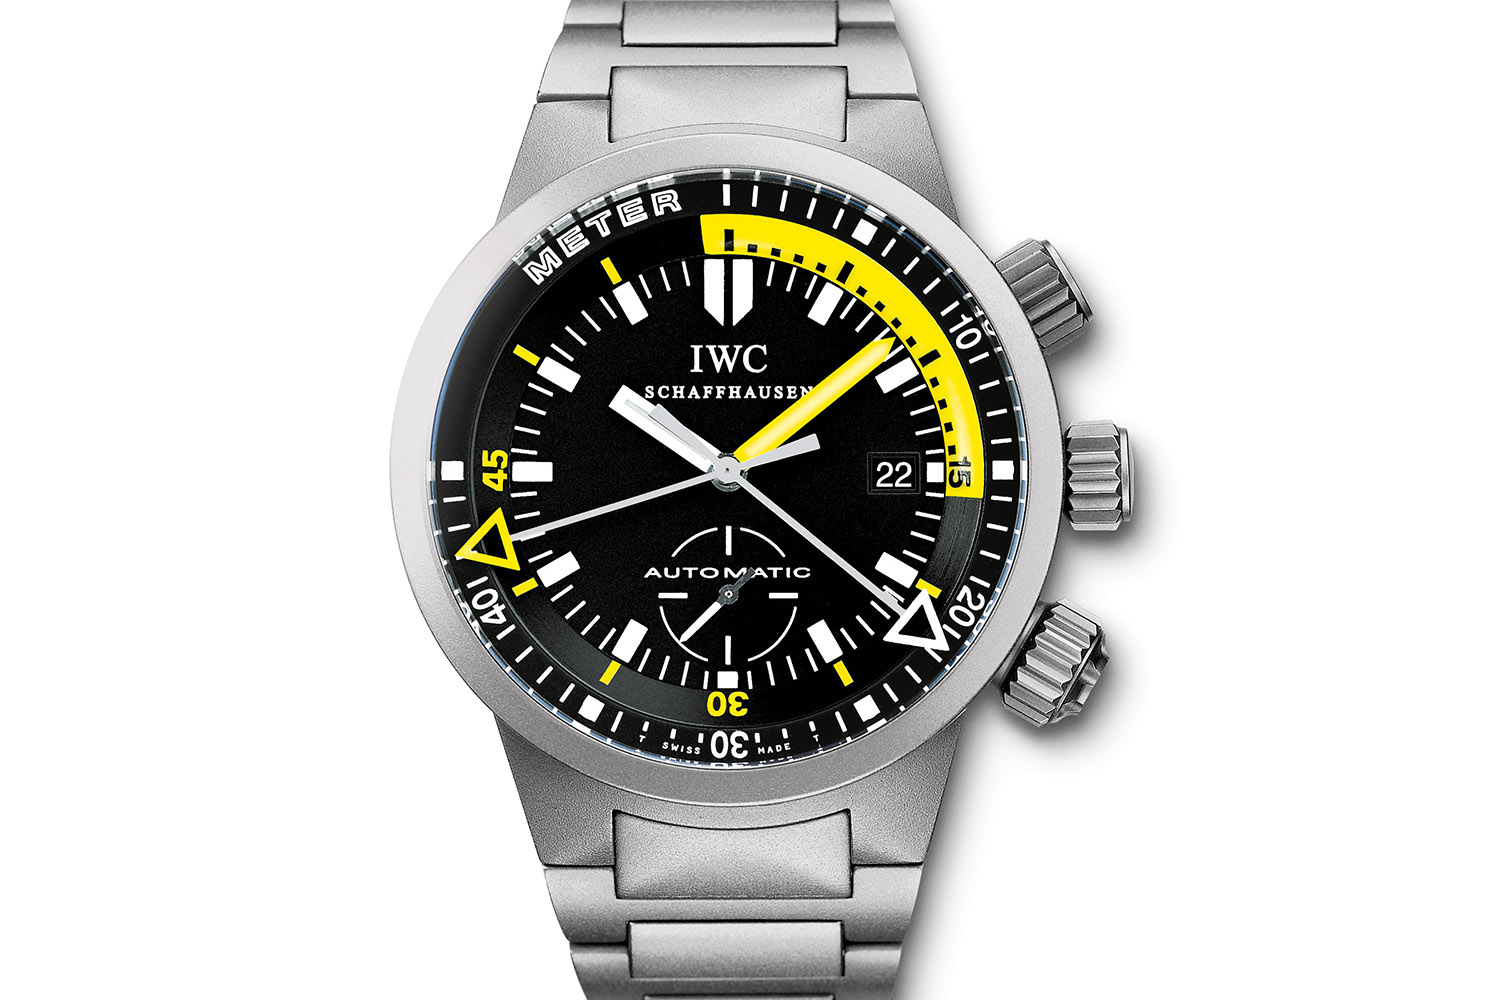 iwc_gst-deep-one_ref-3527_1999